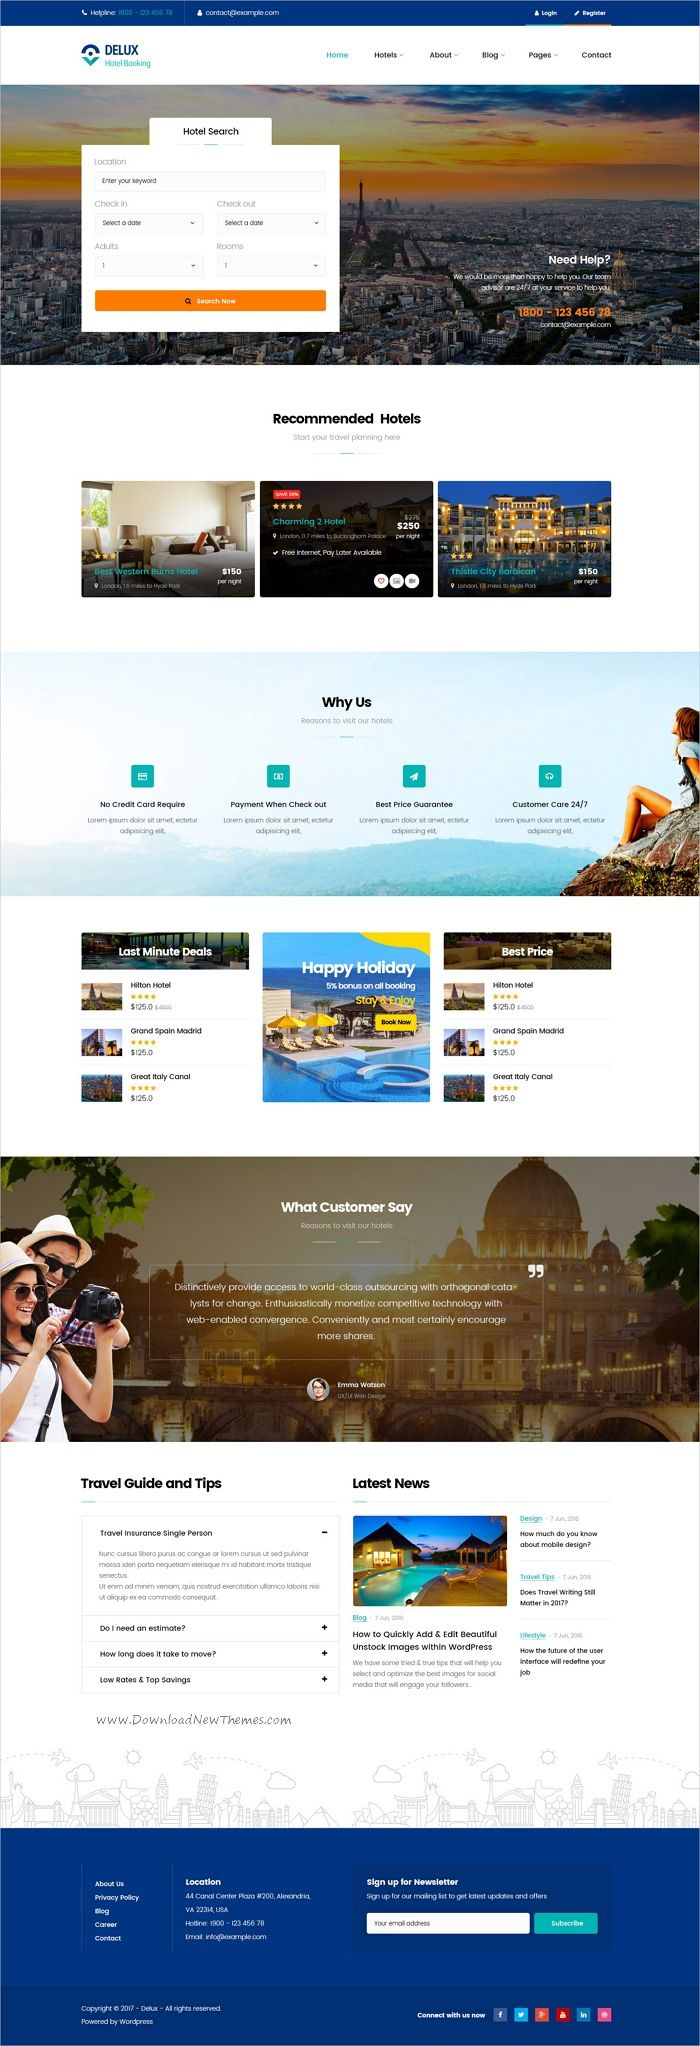 Delux is clean and modern design 3in1 responsive #WordPress theme for online #hotel and #resorts booking website download now..